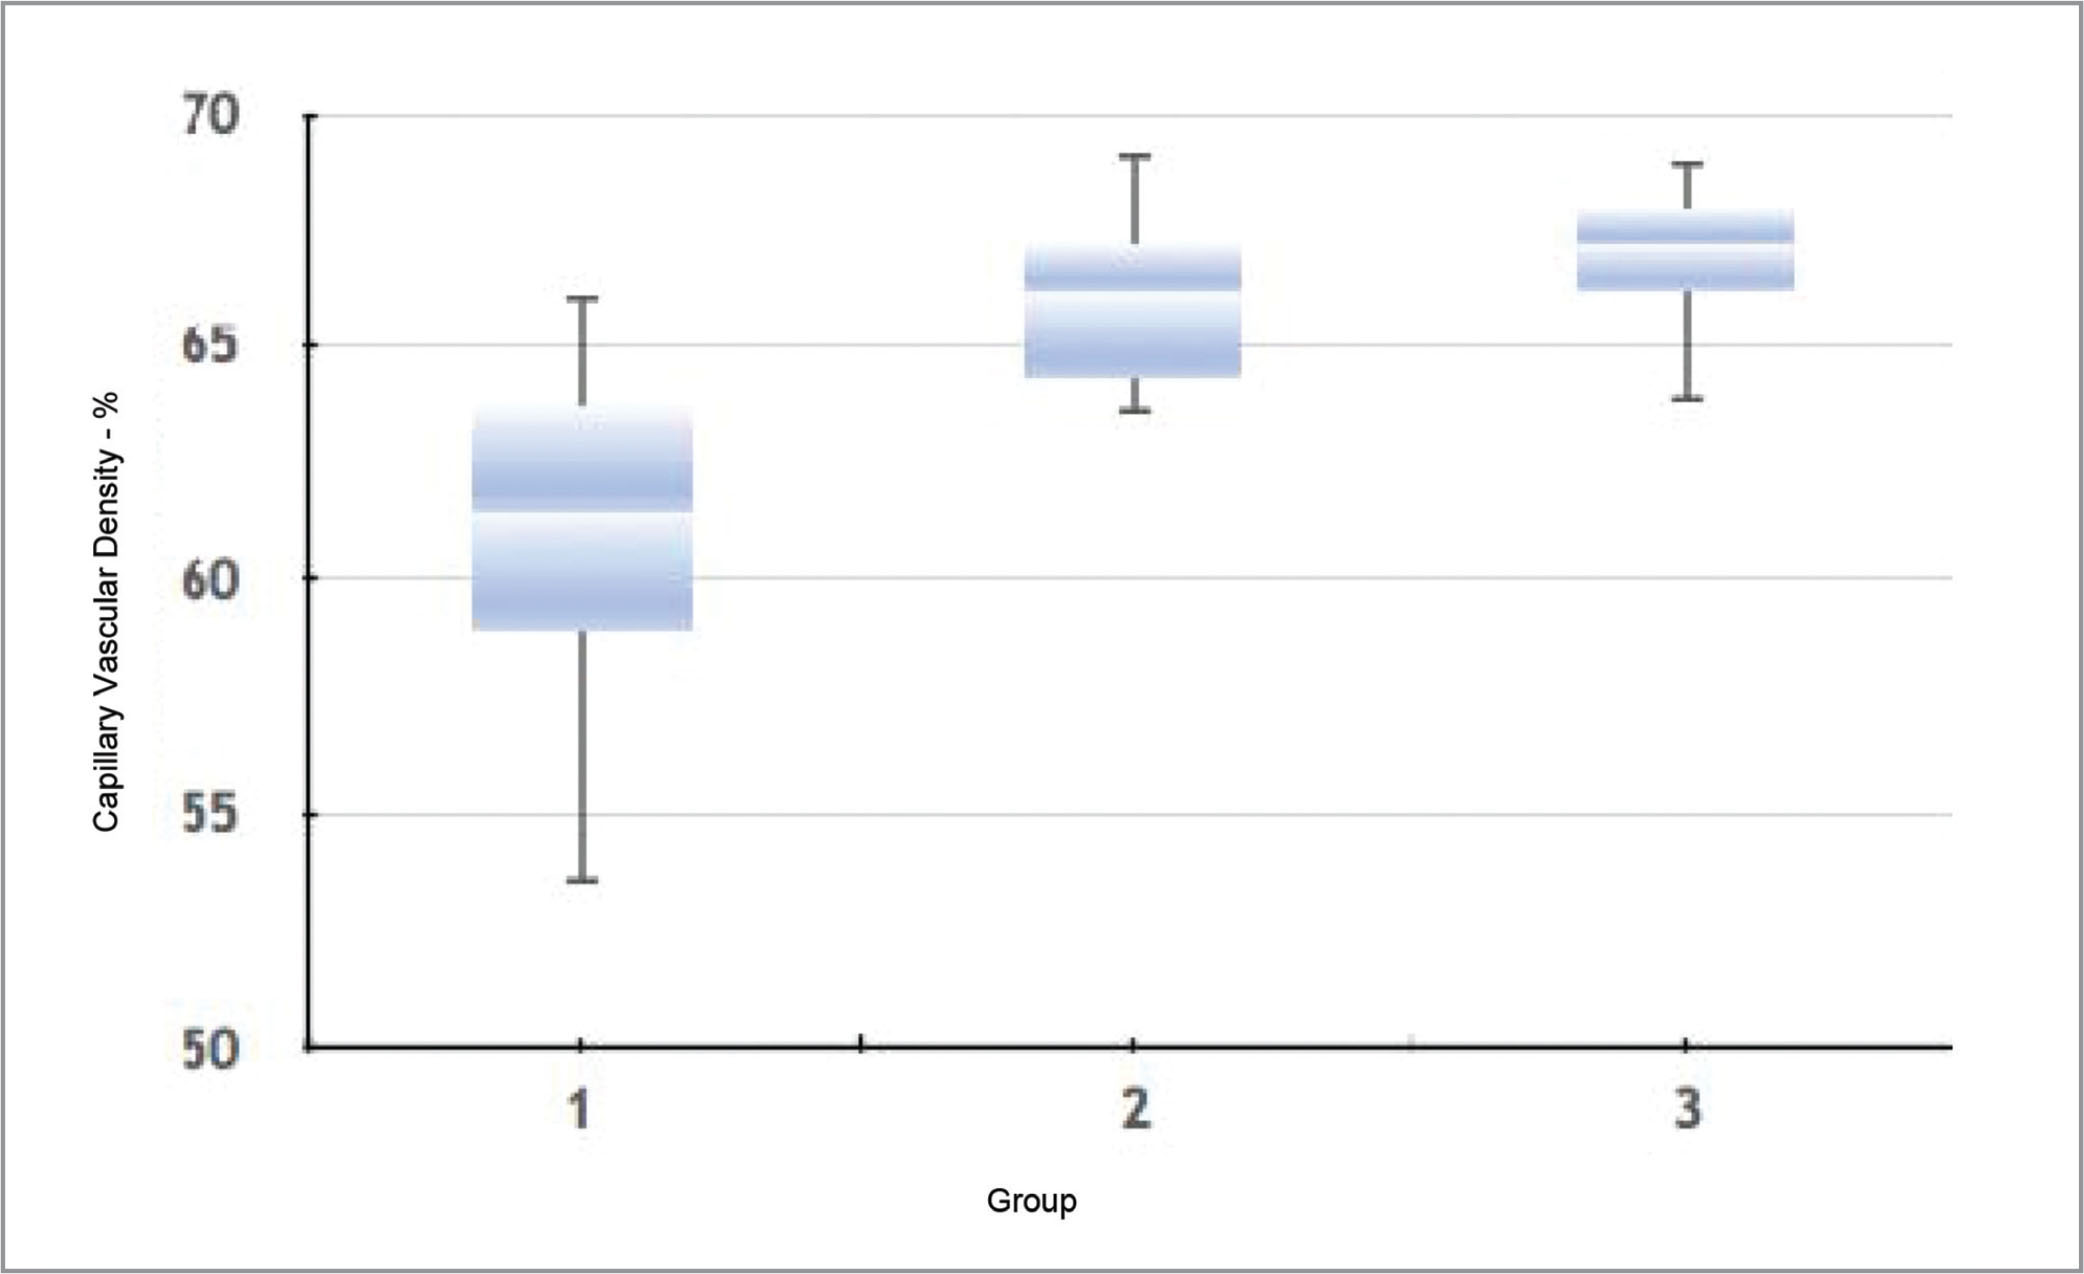 The boxplot shows the median choroidal vascular density (CVD) for all the three groups. Group 1 represents all of the patients' affected eyes' vessel density of choriocapillaris (median: 0.6147; mean: 0.6082 ± 0.0367). Group 2 is the patients' normal eyes' vessel density of the choriocapillaris (median: 0.6618; mean: 0.6585 ± 0.0165). Group 3 represents all of the normal people's eyes' vessel density of the choriocapillaris (median: 0.6717; mean: 0.6689 ± 0.0128).